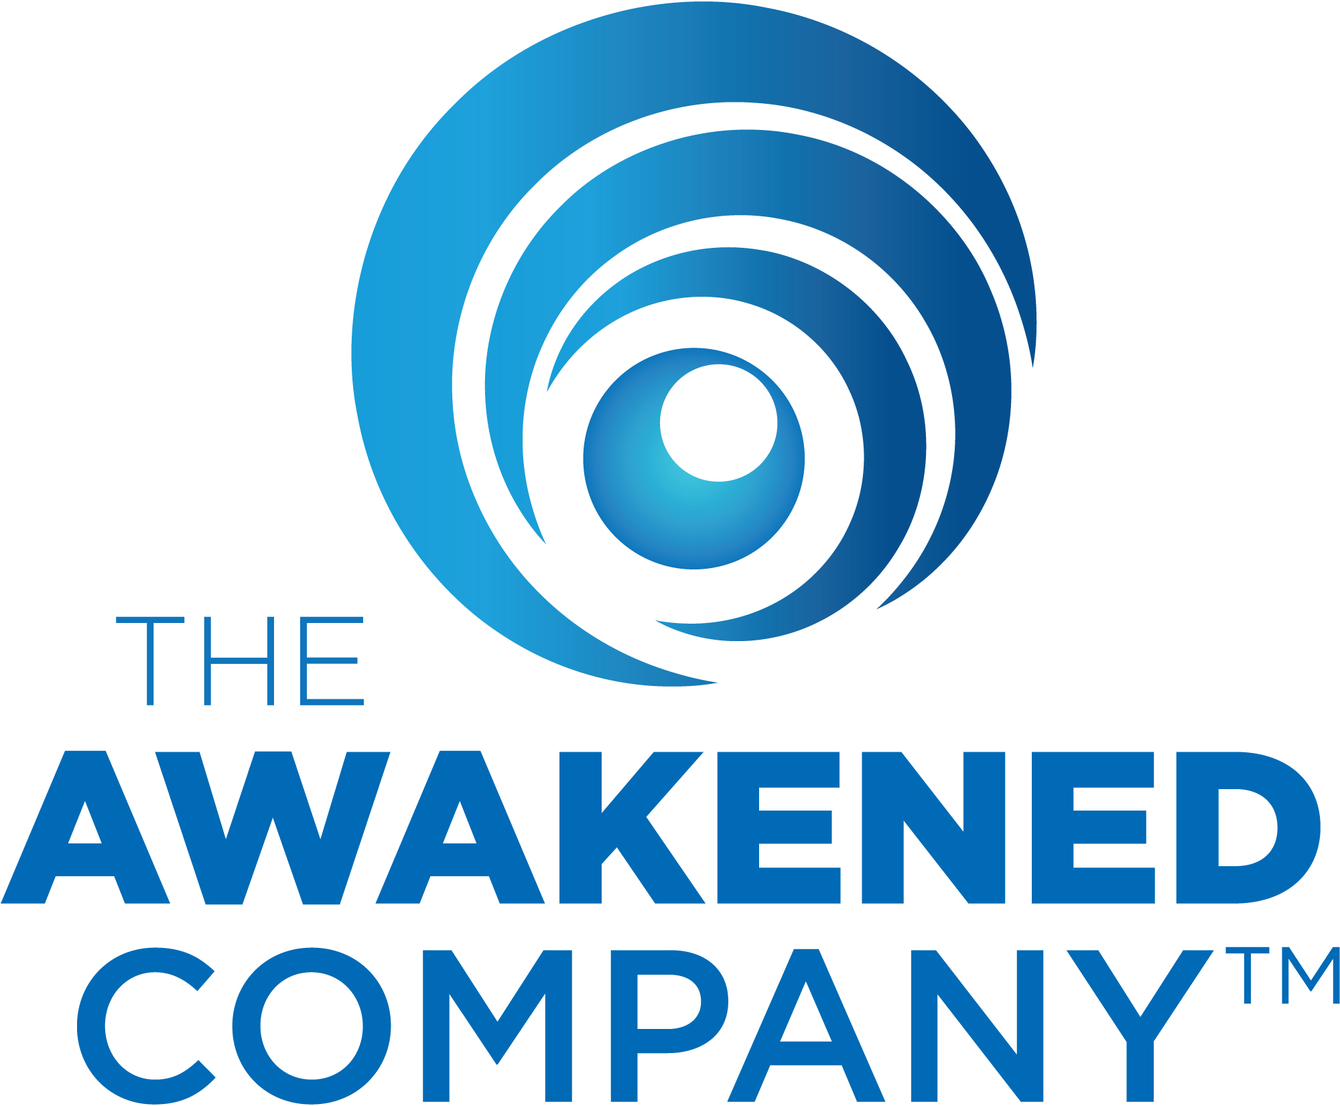 The Awakened Company